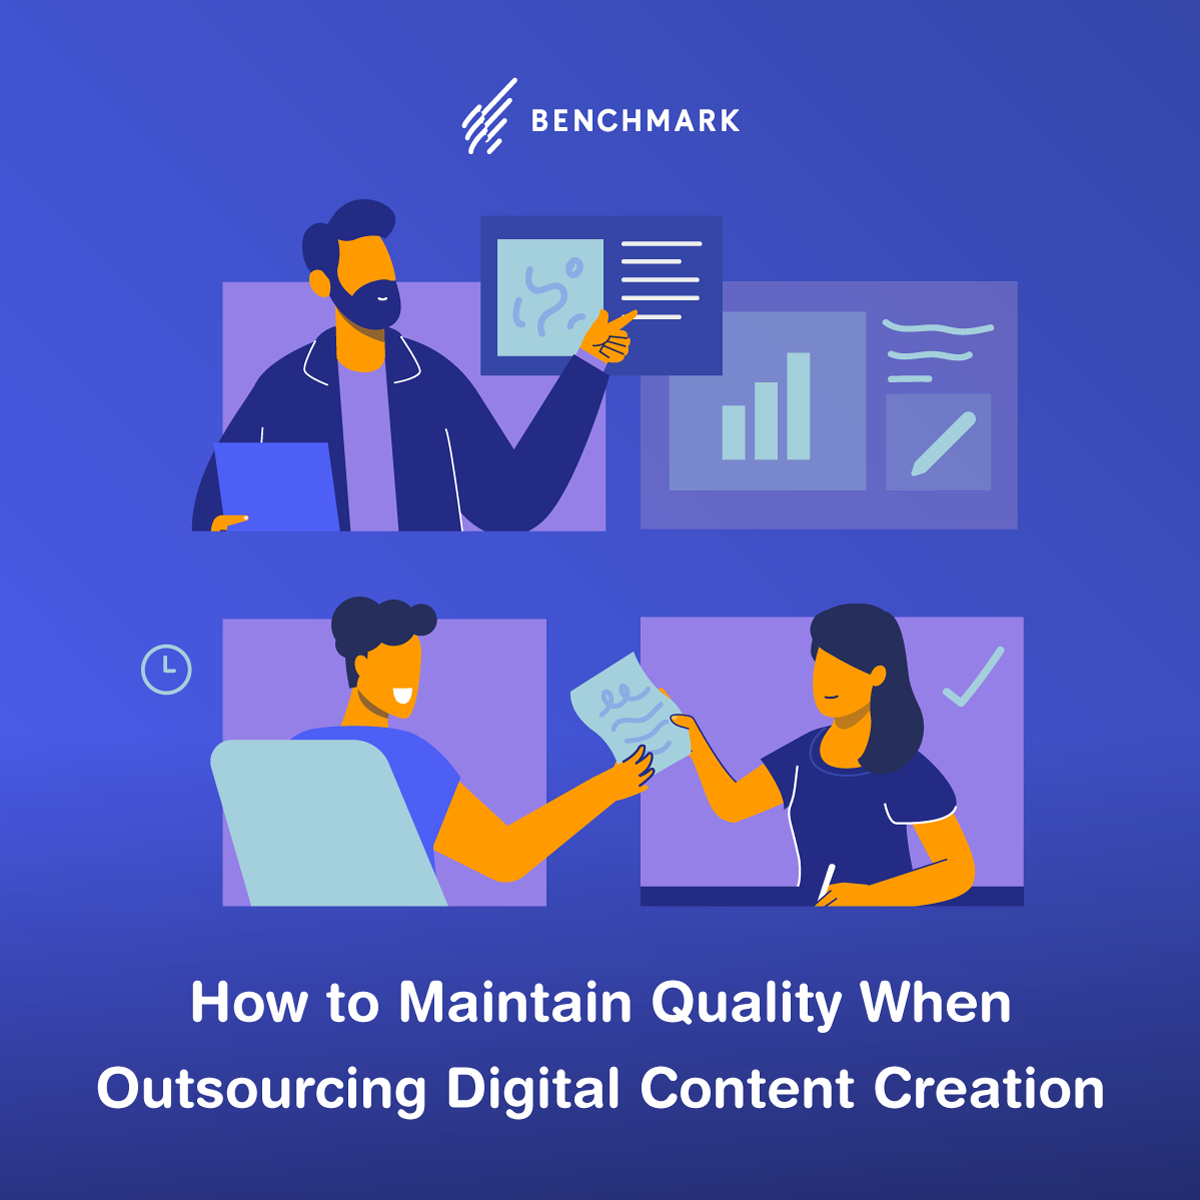 How to Maintain Quality When Outsourcing Digital Content Creation